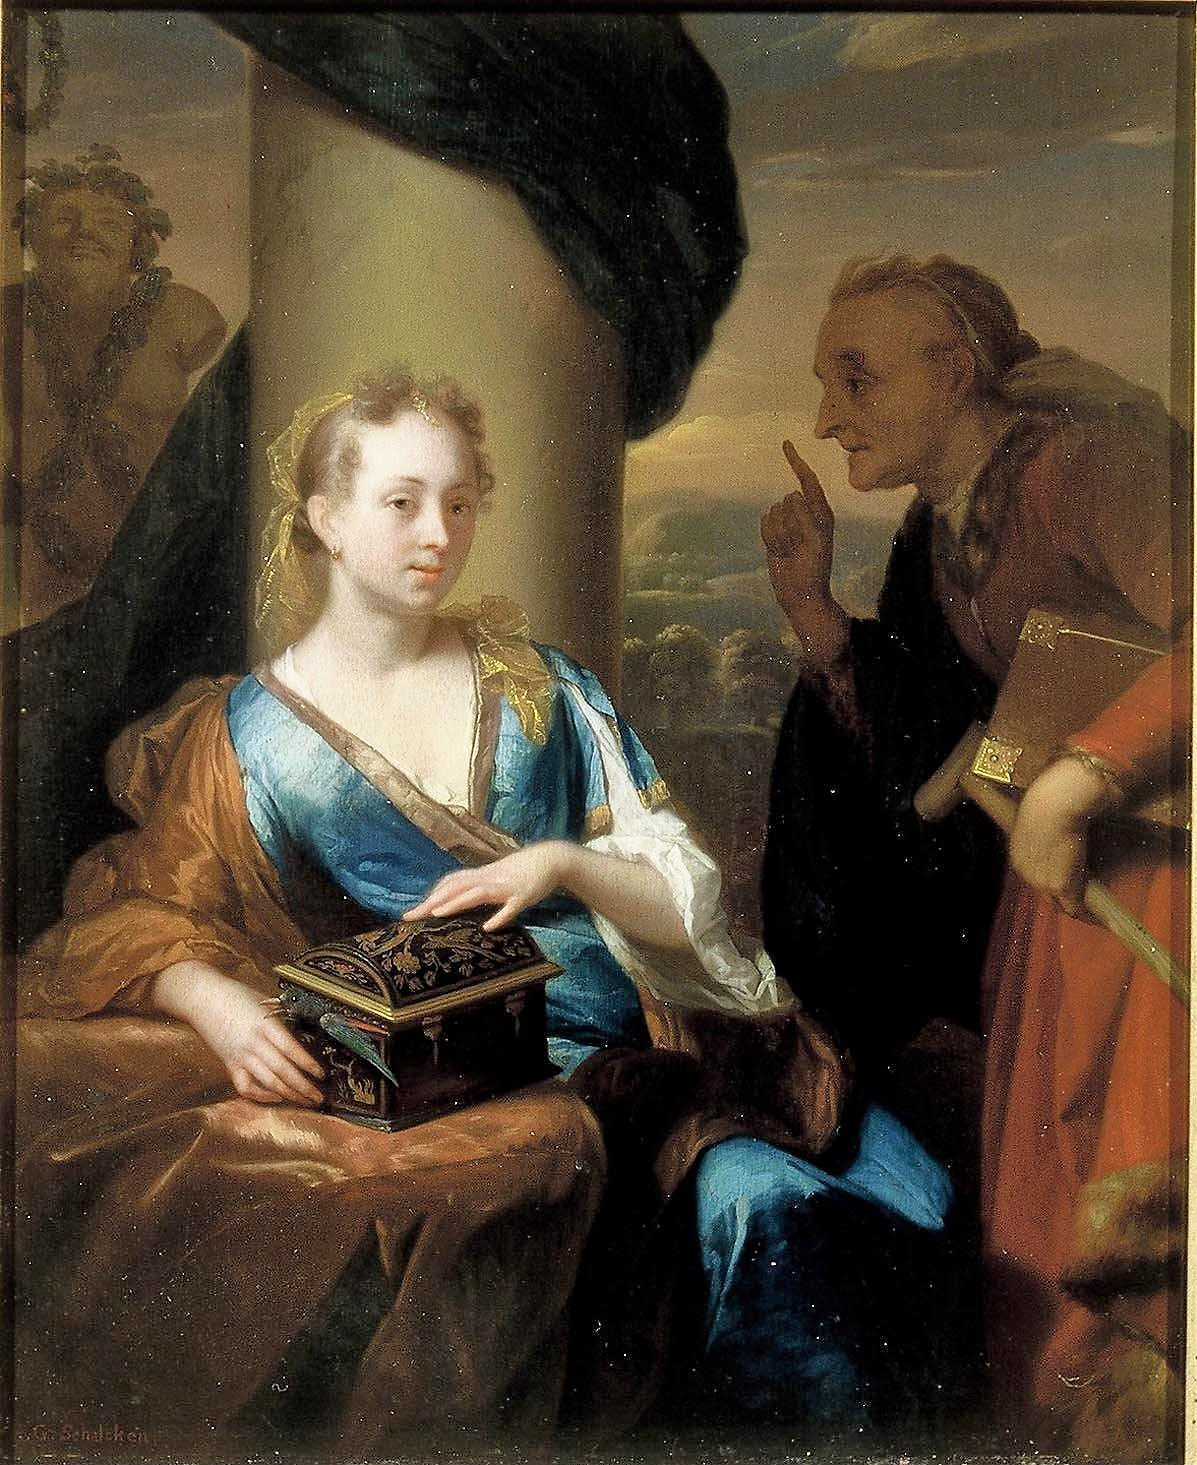 Schalcken 1690 ca A useless Moral Lesson Mauritshuis